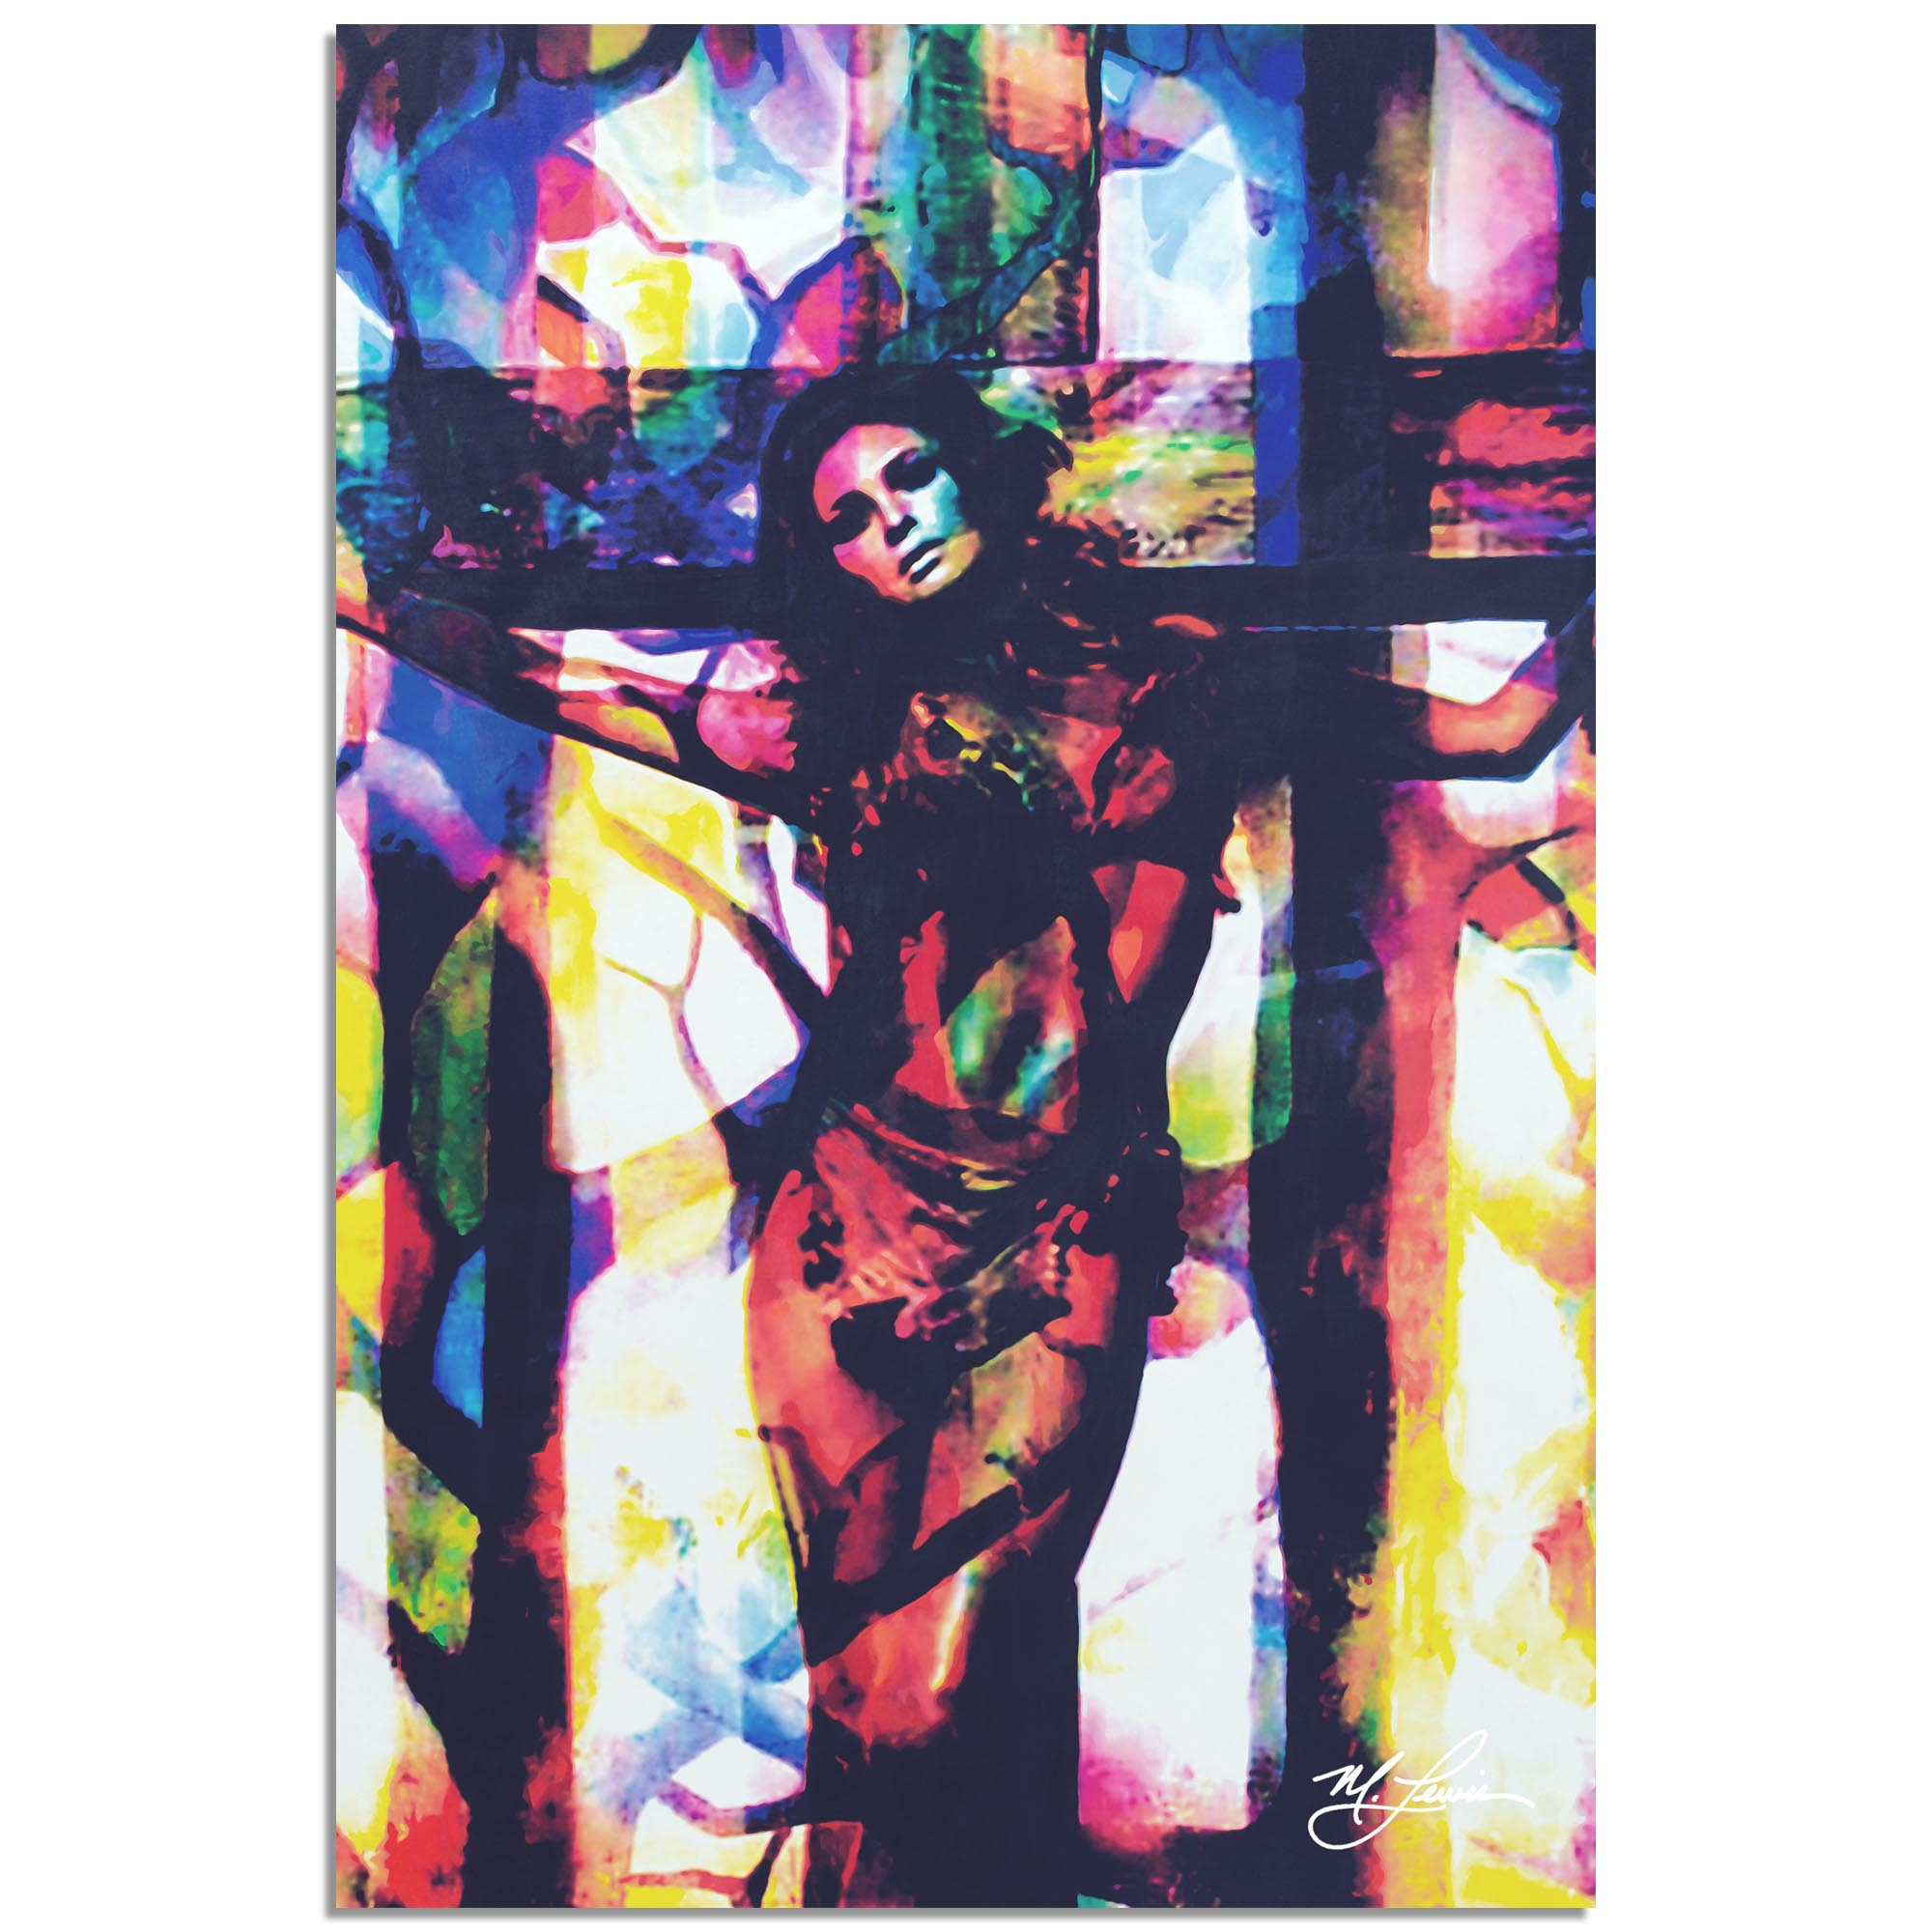 Mark Lewis 'Raquel Welch Convicted Silk' 22in x 32in Celebrity Pop Art on Metal or Plexiglass